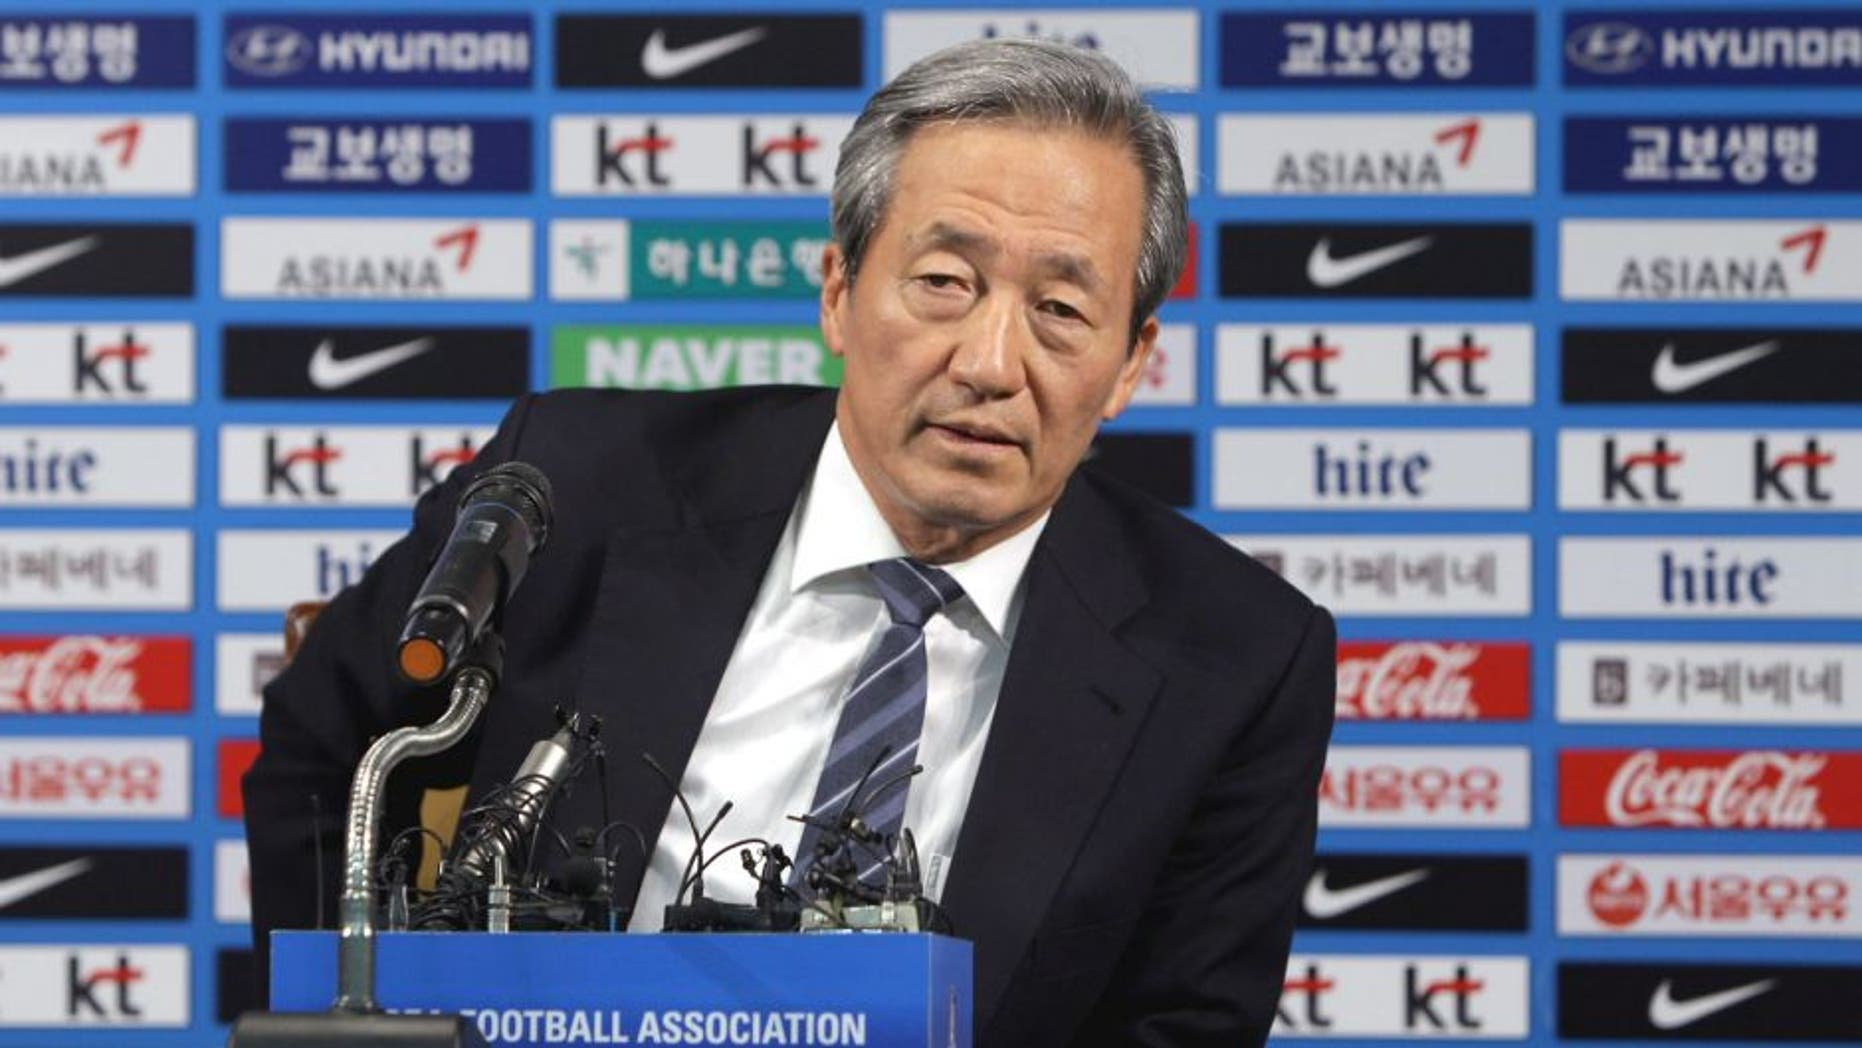 SEOUL, SOUTH KOREA - JUNE 03: Former FIFA vice president Chung Mong-Joon speaks during a press conference on June 3, 2015 in Seoul, South Korea. Honorary Vice President of FIFA Chung Mong-Joon announced that he will consider running for FIFA presidency after the announcement by Sepp Blatter to step down from the position later this year amid a corruption scandal. (Photo by Chung Sung-Jun/Getty Images)